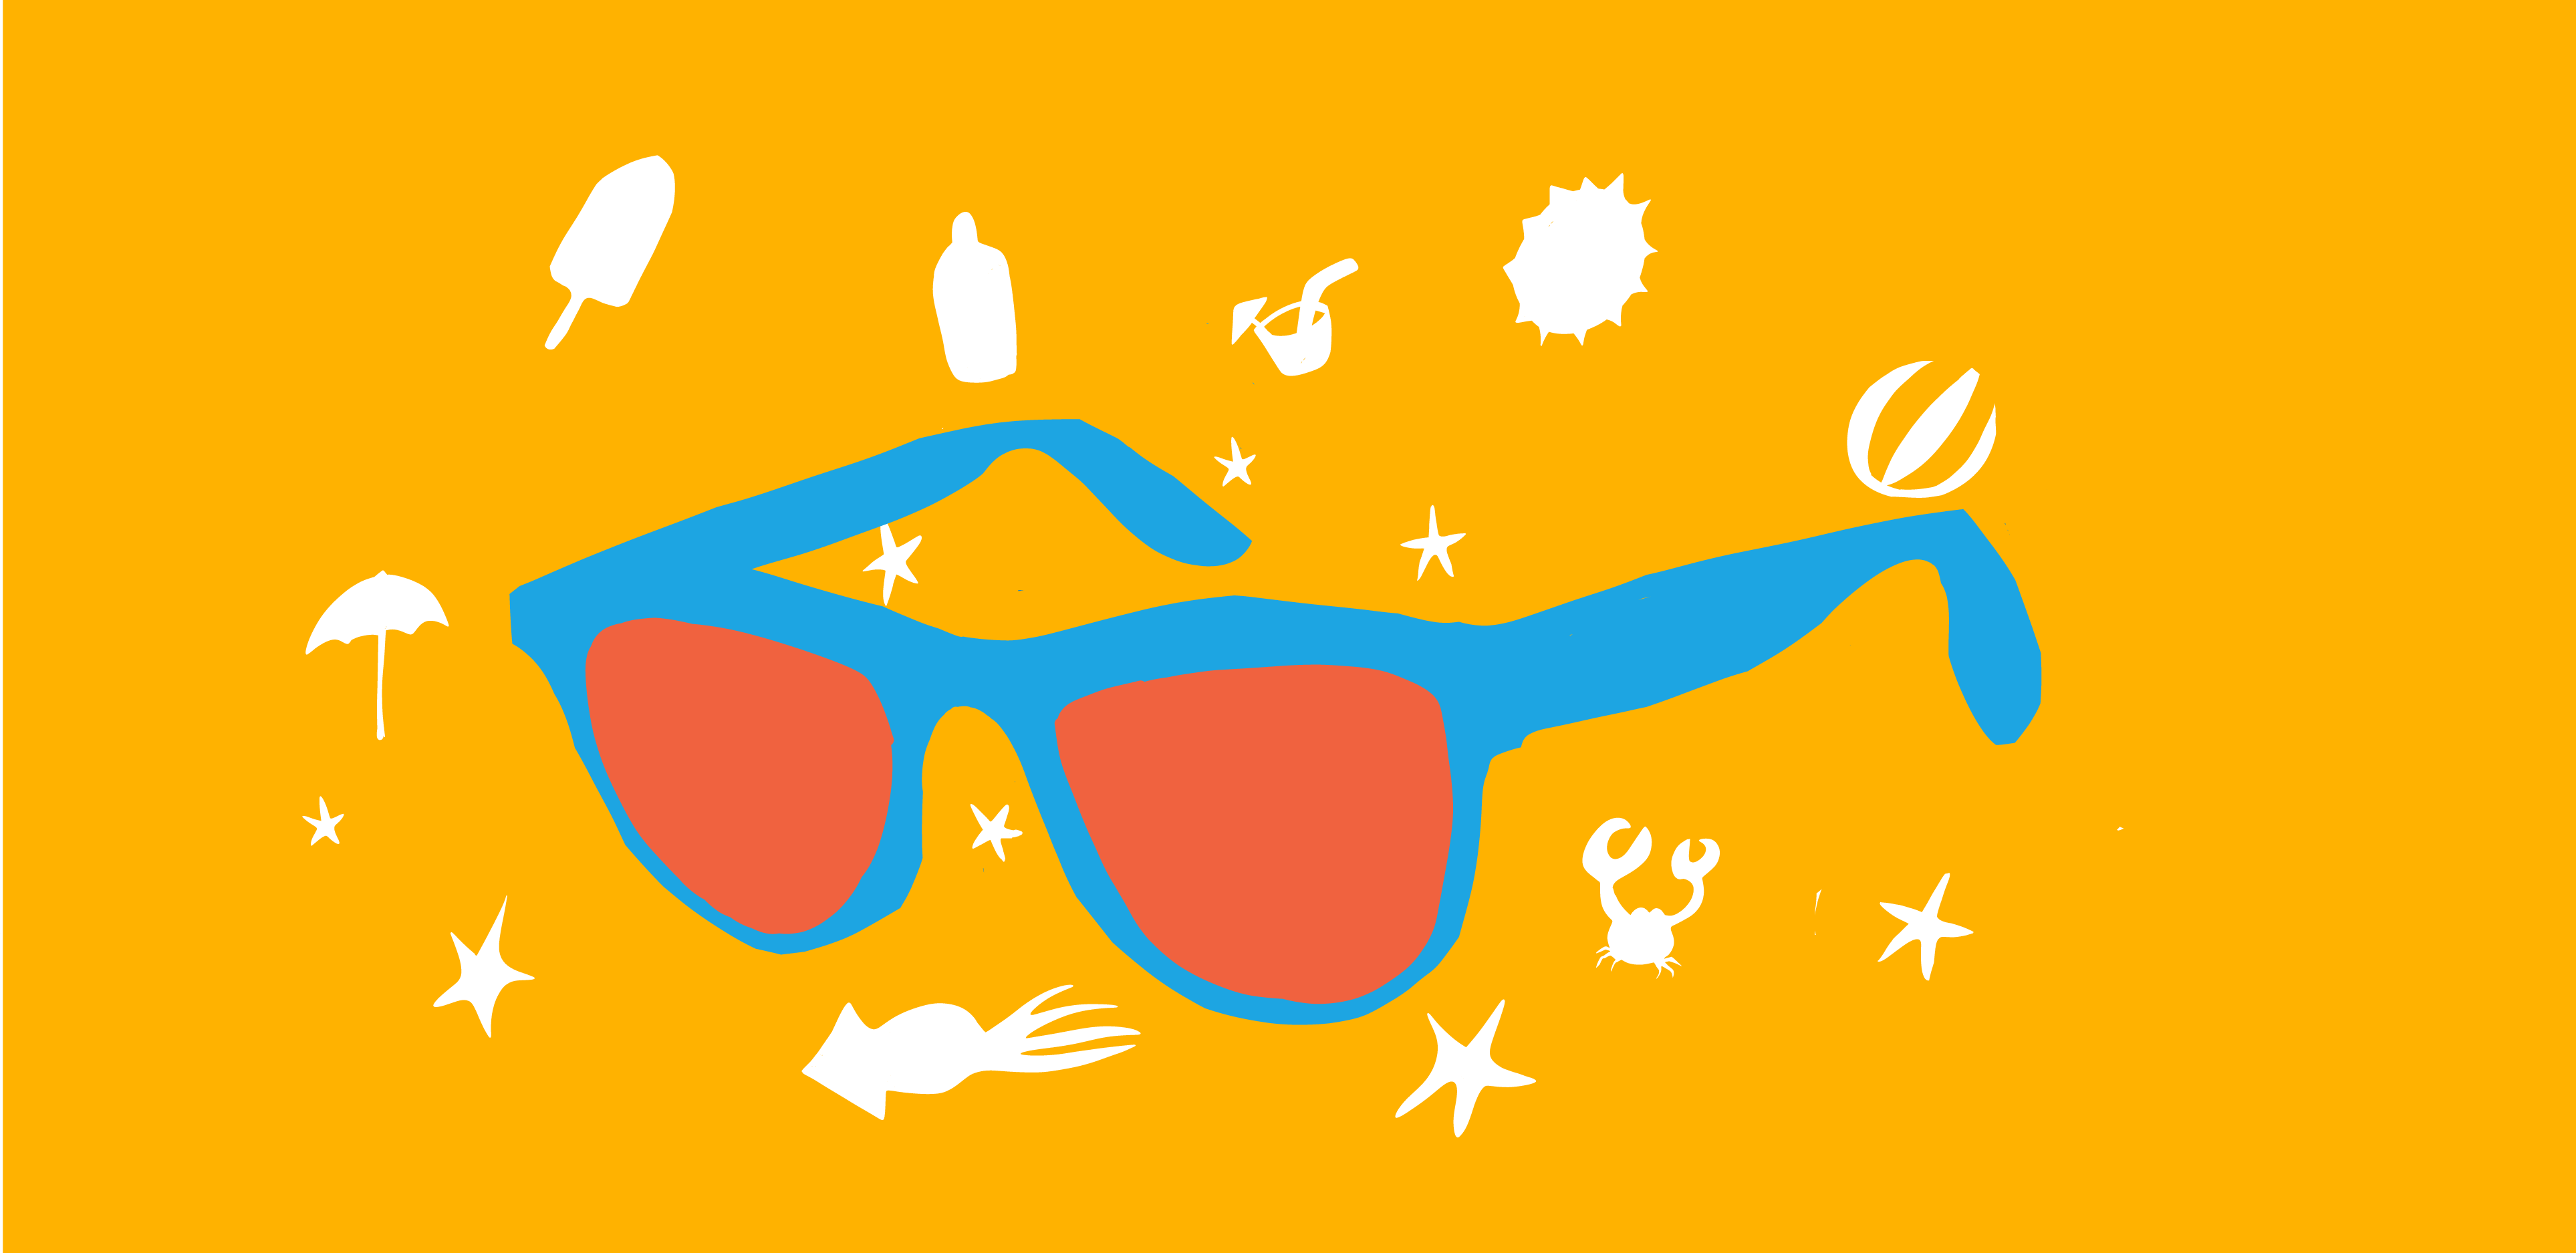 7fd22a9b1d 15 Random Facts And Useless Trivia About Sunglasses